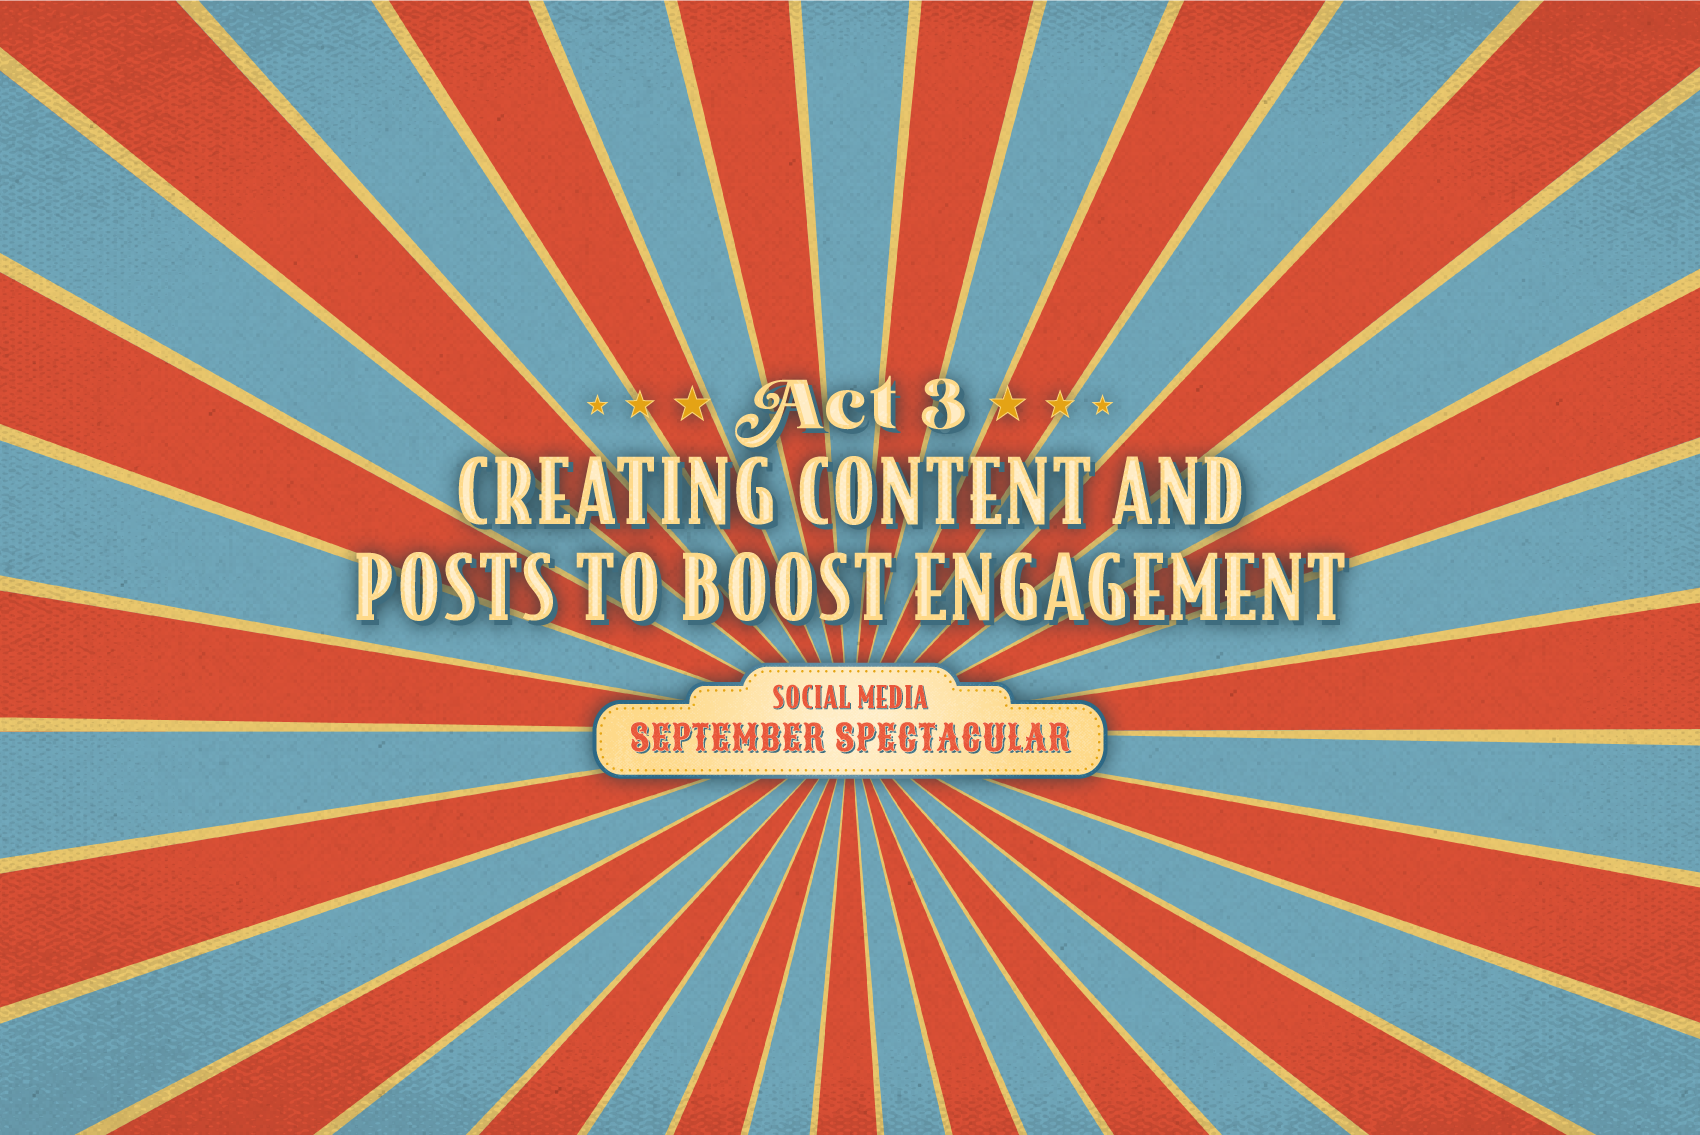 Creating Content and Posts to Boost Engagement